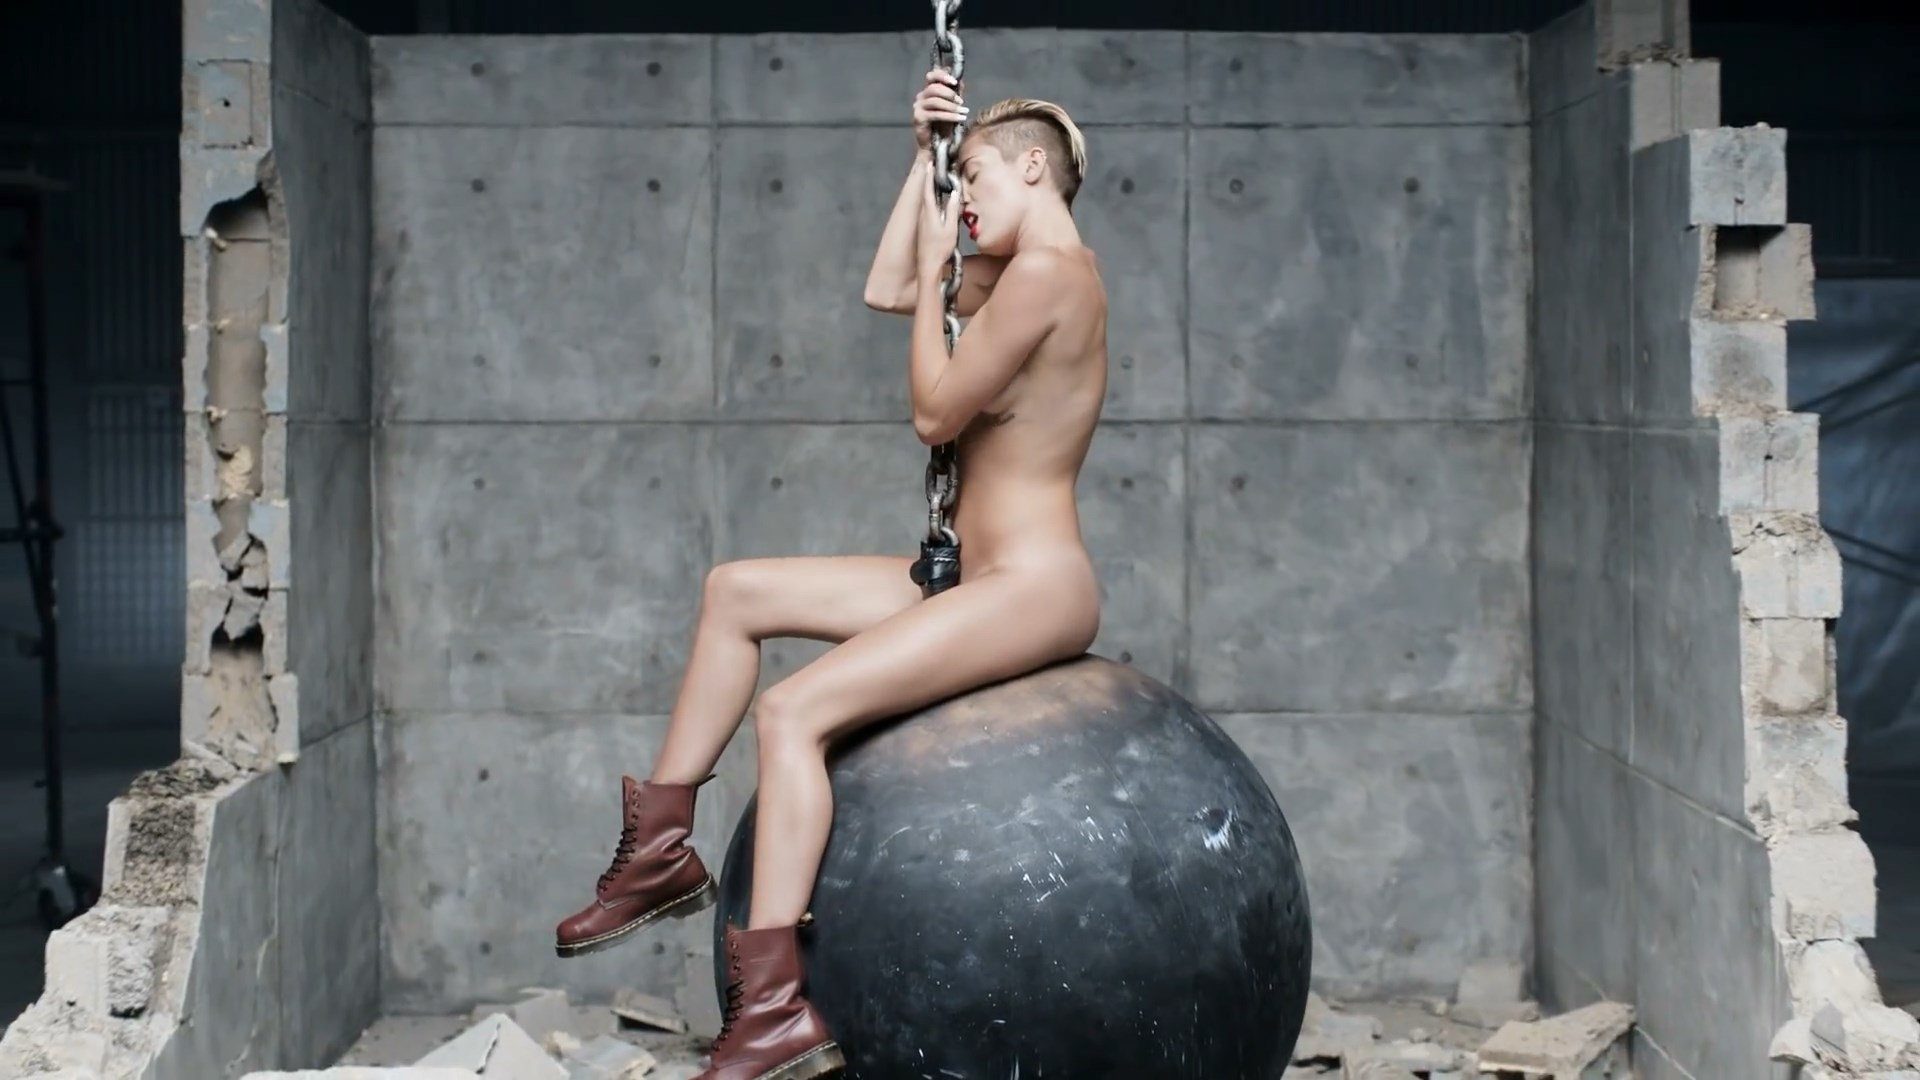 miley-cyrus-naked-ball-nude-women-with-perfect-asses